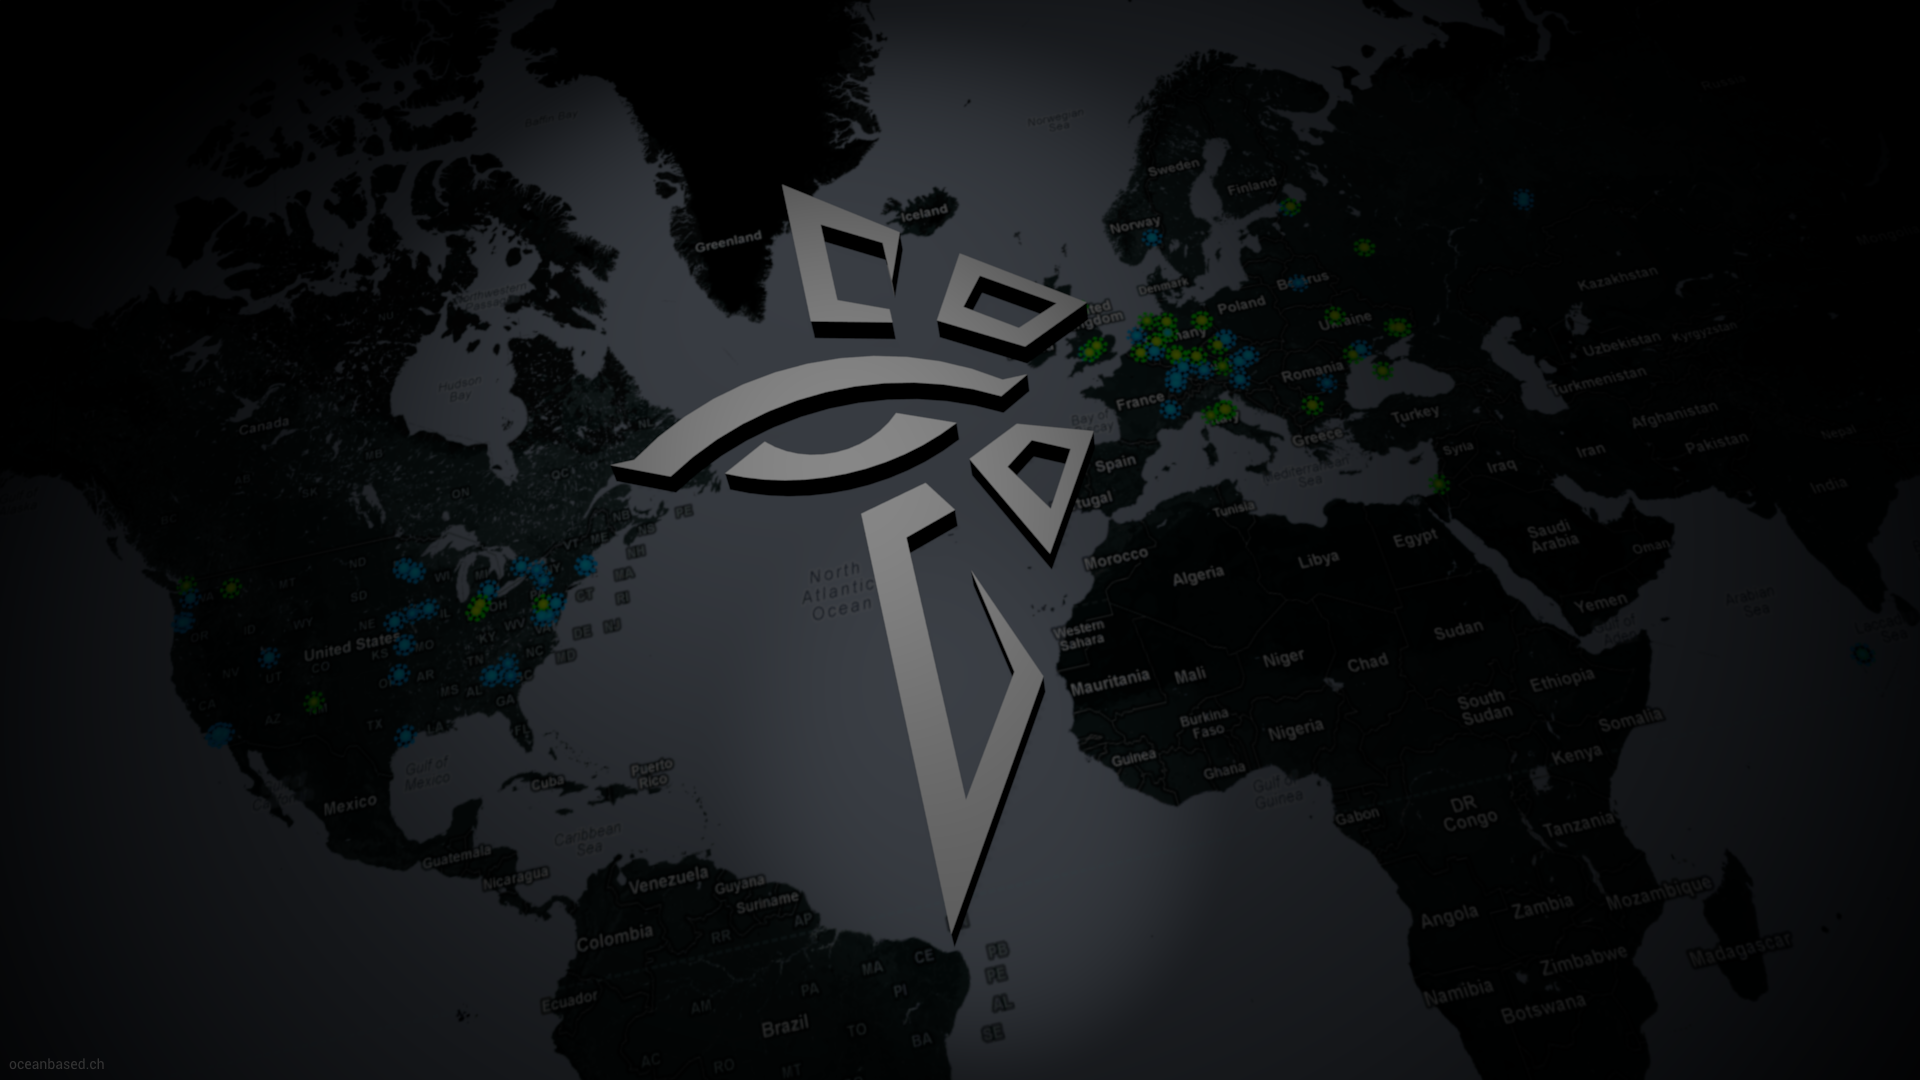 Adorable Ingress Wallpaper, 39312158 1920x1080